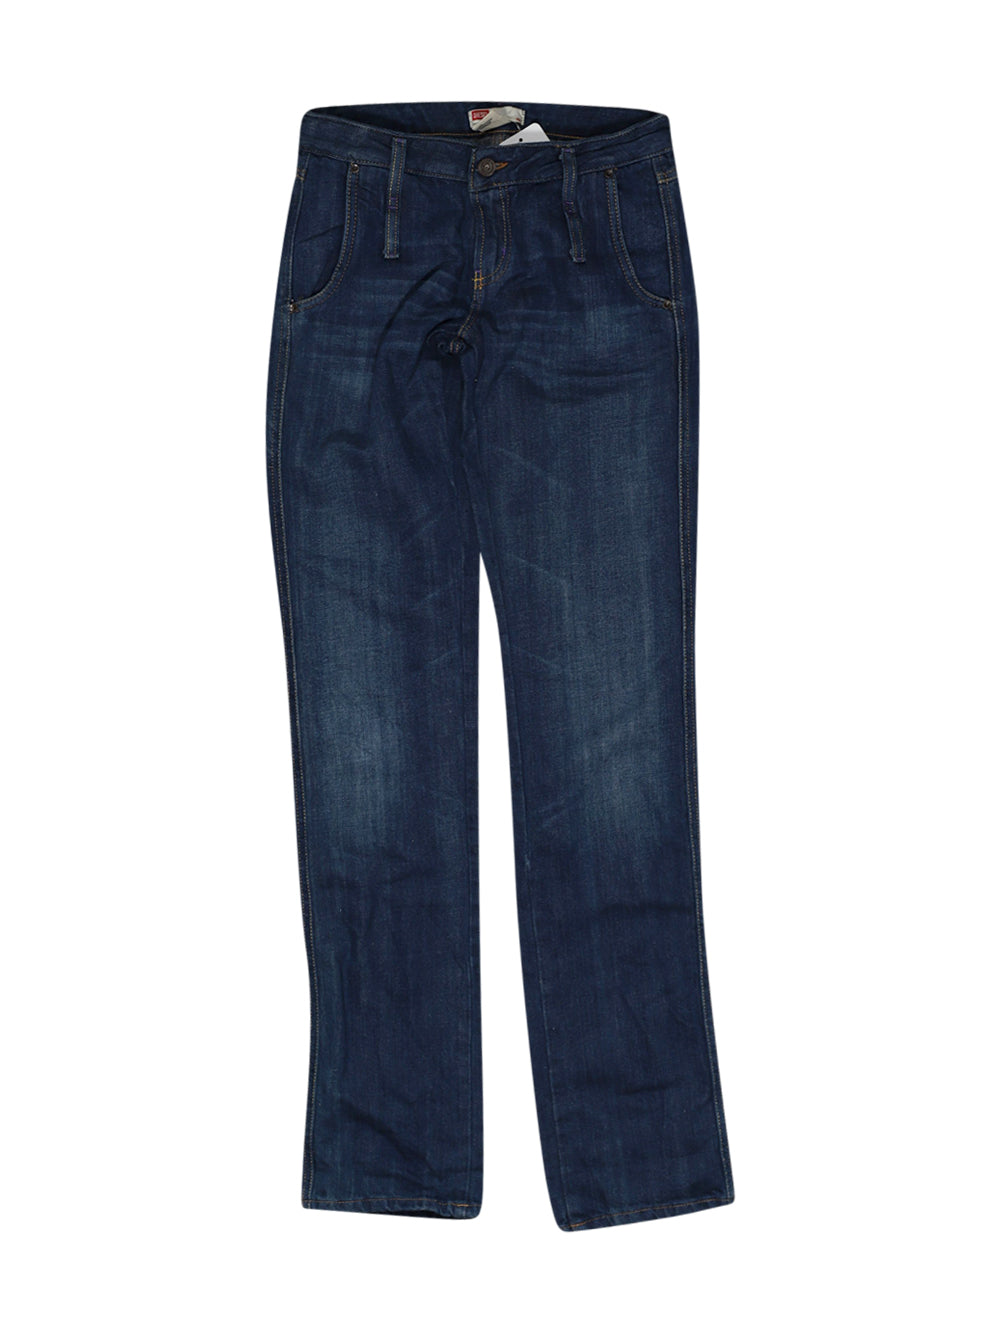 Front photo of Preloved Diesel Blue Girl's trousers - size 12-14 yrs